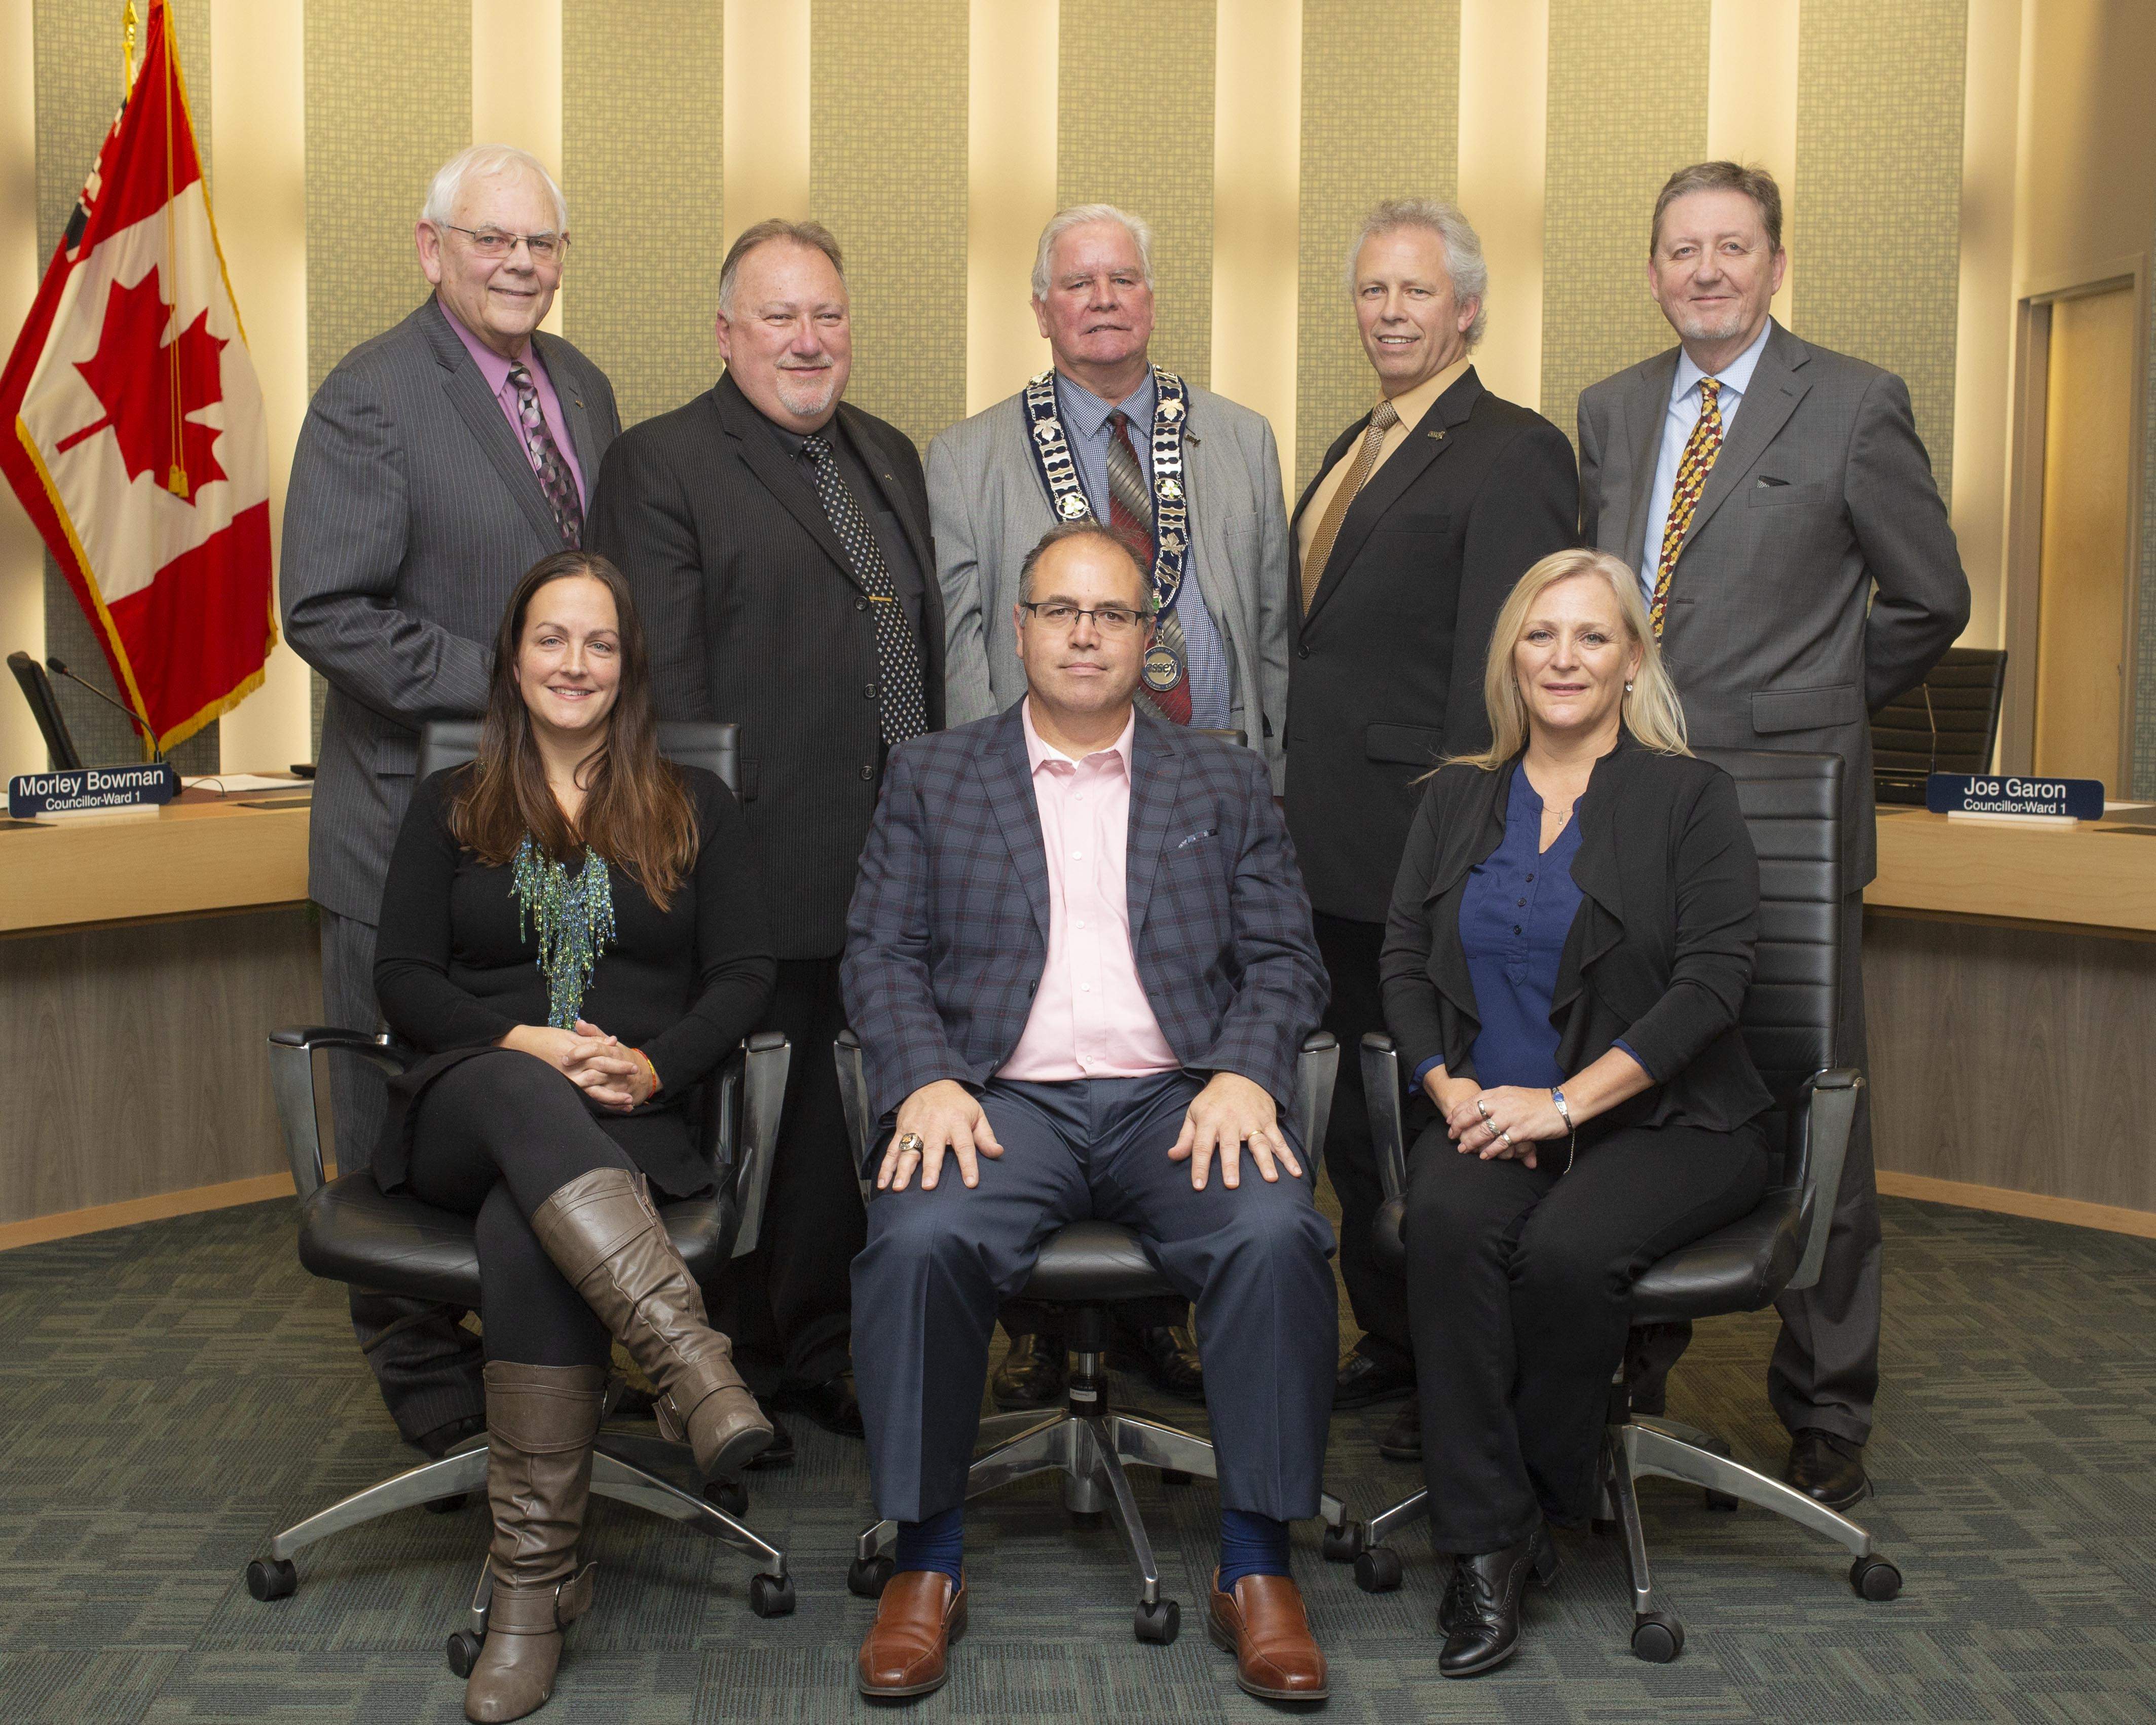 Group photo of Town of Essex Council